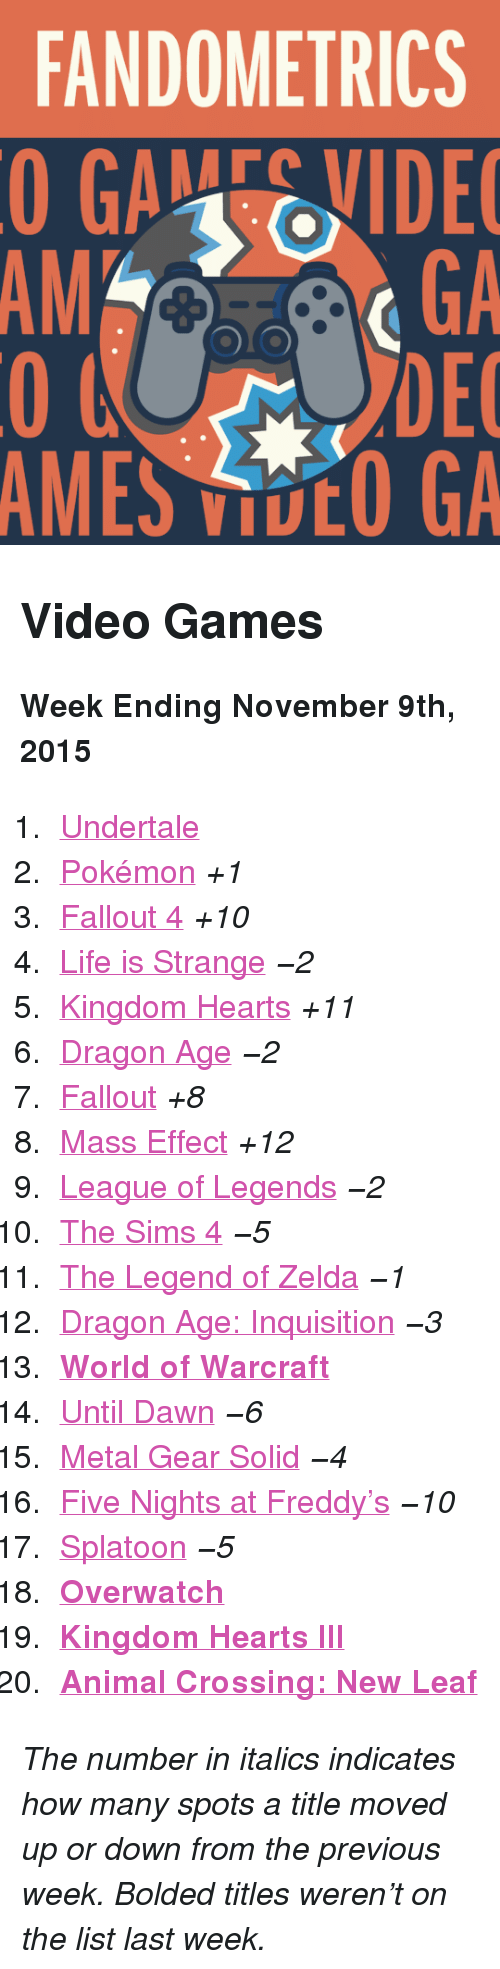 "Fallout 4, League of Legends, and Life: FANDOMETRICS  GAEVIDE  GA  DEC  AMES VOO GA  AM <h2>Video Games</h2><p><b>Week Ending November 9th, 2015</b></p><ol><li><a href=""http://www.tumblr.com/search/undertale"">Undertale</a></li>  <li><a href=""http://www.tumblr.com/search/pokemon"">Pokémon</a> <i>+1</i></li>  <li><a href=""http://www.tumblr.com/search/fallout%204"">Fallout 4</a> <i>+10</i></li>  <li><a href=""http://www.tumblr.com/search/life%20is%20strange"">Life is Strange</a> <i>−2</i></li>  <li><a href=""http://www.tumblr.com/search/kingdom%20hearts"">Kingdom Hearts</a> <i>+11</i></li>  <li><a href=""http://www.tumblr.com/search/dragon%20age"">Dragon Age</a> <i>−2</i></li>  <li><a href=""http://www.tumblr.com/search/fallout"">Fallout</a> <i>+8</i></li>  <li><a href=""http://www.tumblr.com/search/mass%20effect"">Mass Effect</a> <i>+12</i></li>  <li><a href=""http://www.tumblr.com/search/league%20of%20legends"">League of Legends</a> <i>−2</i></li>  <li><a href=""http://www.tumblr.com/search/sims%204"">The Sims 4</a> <i>−5</i></li>  <li><a href=""http://www.tumblr.com/search/legend%20of%20zelda"">The Legend of Zelda</a> <i>−1</i></li>  <li><a href=""http://www.tumblr.com/search/dragon%20age%20inquisition"">Dragon Age: Inquisition</a> <i>−3</i></li>  <li><a href=""http://www.tumblr.com/search/world%20of%20warcraft""><b>World of Warcraft</b></a></li>  <li><a href=""http://www.tumblr.com/search/until%20dawn"">Until Dawn</a> <i>−6</i></li>  <li><a href=""http://www.tumblr.com/search/metal%20gear%20solid"">Metal Gear Solid</a> <i>−4</i></li>  <li><a href=""http://www.tumblr.com/search/five%20nights%20at%20freddy's"">Five Nights at Freddy&rsquo;s</a> <i>−10</i></li>  <li><a href=""http://www.tumblr.com/search/splatoon"">Splatoon</a> <i>−5</i></li>  <li><a href=""http://www.tumblr.com/search/overwatch""><b>Overwatch</b></a></li>  <li><a href=""http://www.tumblr.com/search/kh3""><b>Kingdom Hearts III</b></a></li>  <li><a href=""http://www.tumblr.com/search/acnl""><b>Animal Crossing: New Leaf</b></a></li></ol><p><i>The number in italics indicates how many spots a title moved up or down from the previous week. Bolded titles weren't on the list last week.</i></p>"